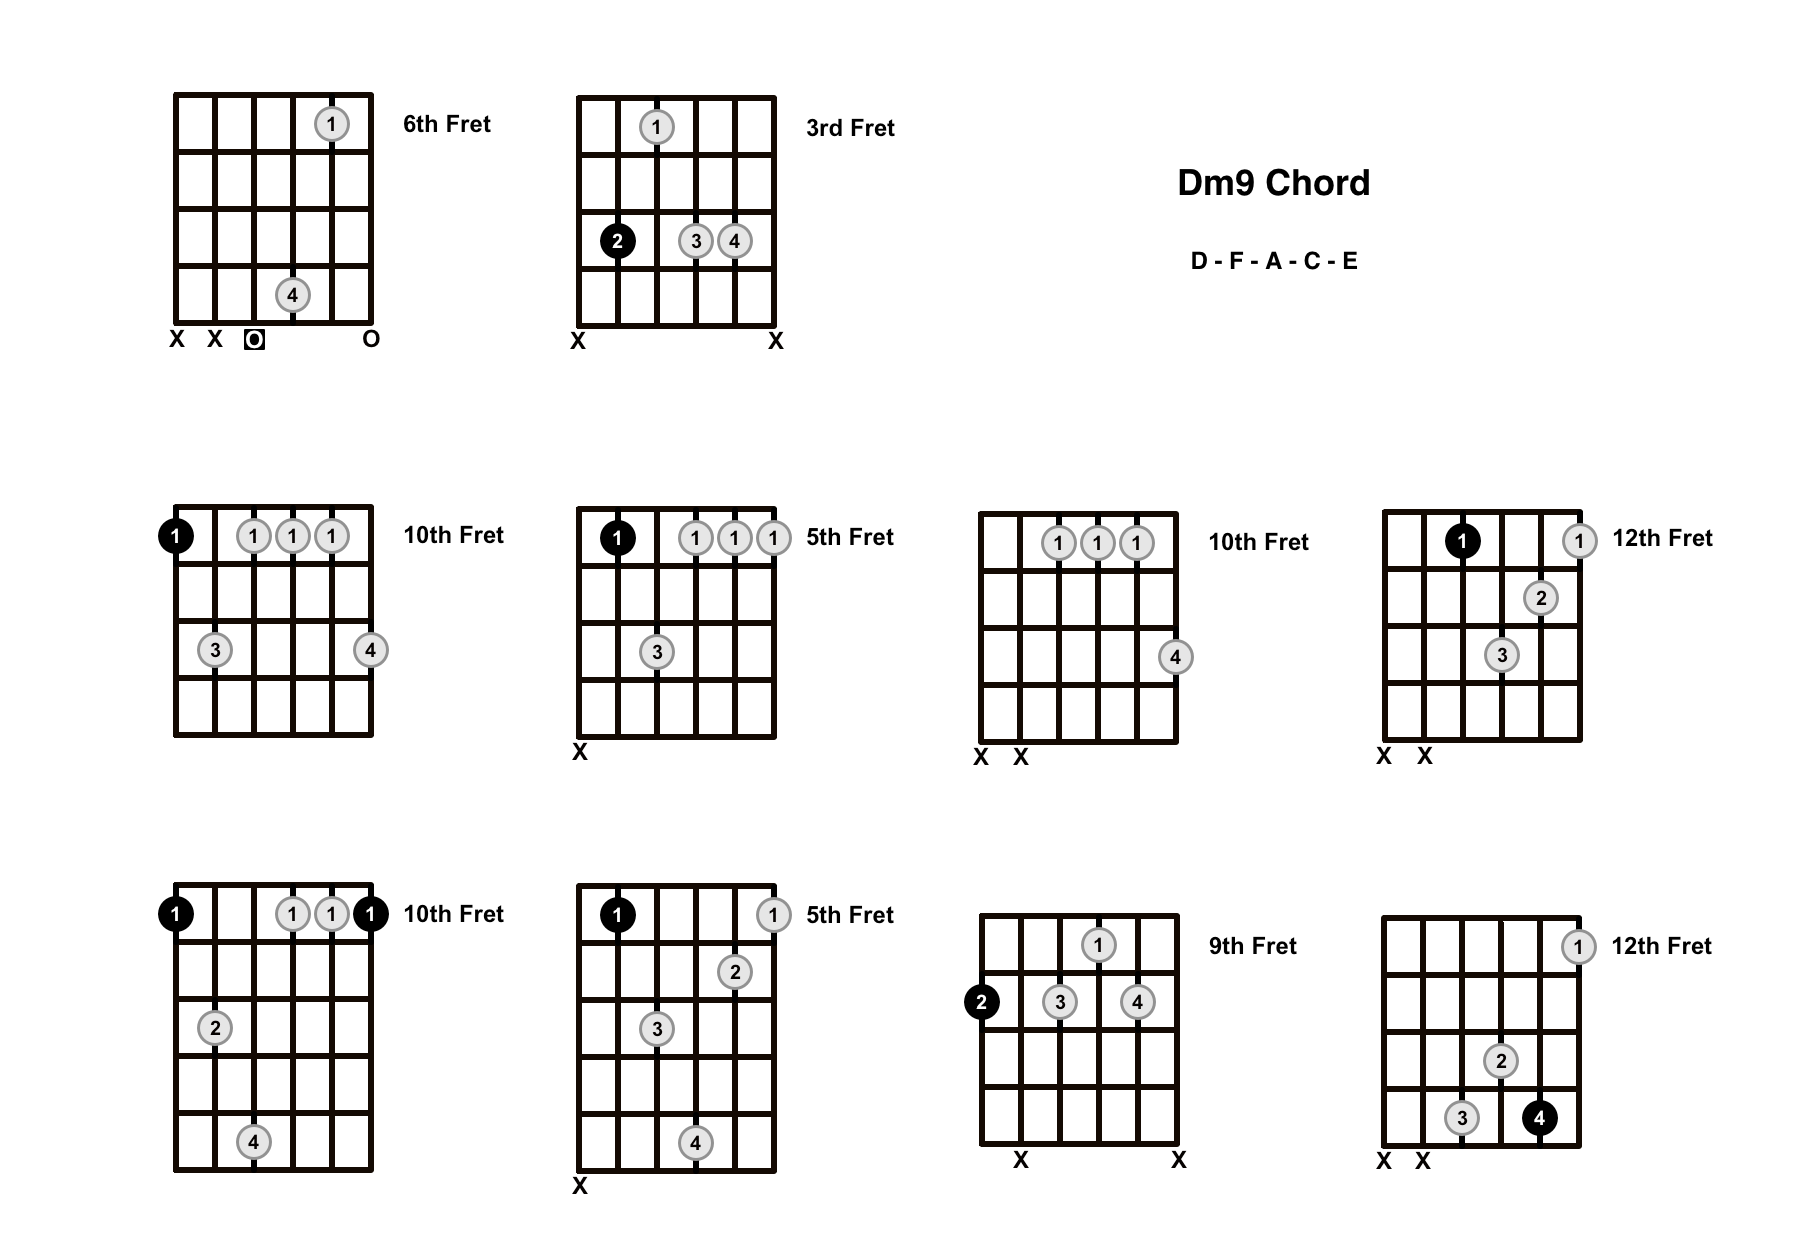 Dm9 Chord On The Guitar (D Minor 9) – Diagrams, Finger Positions and Theory